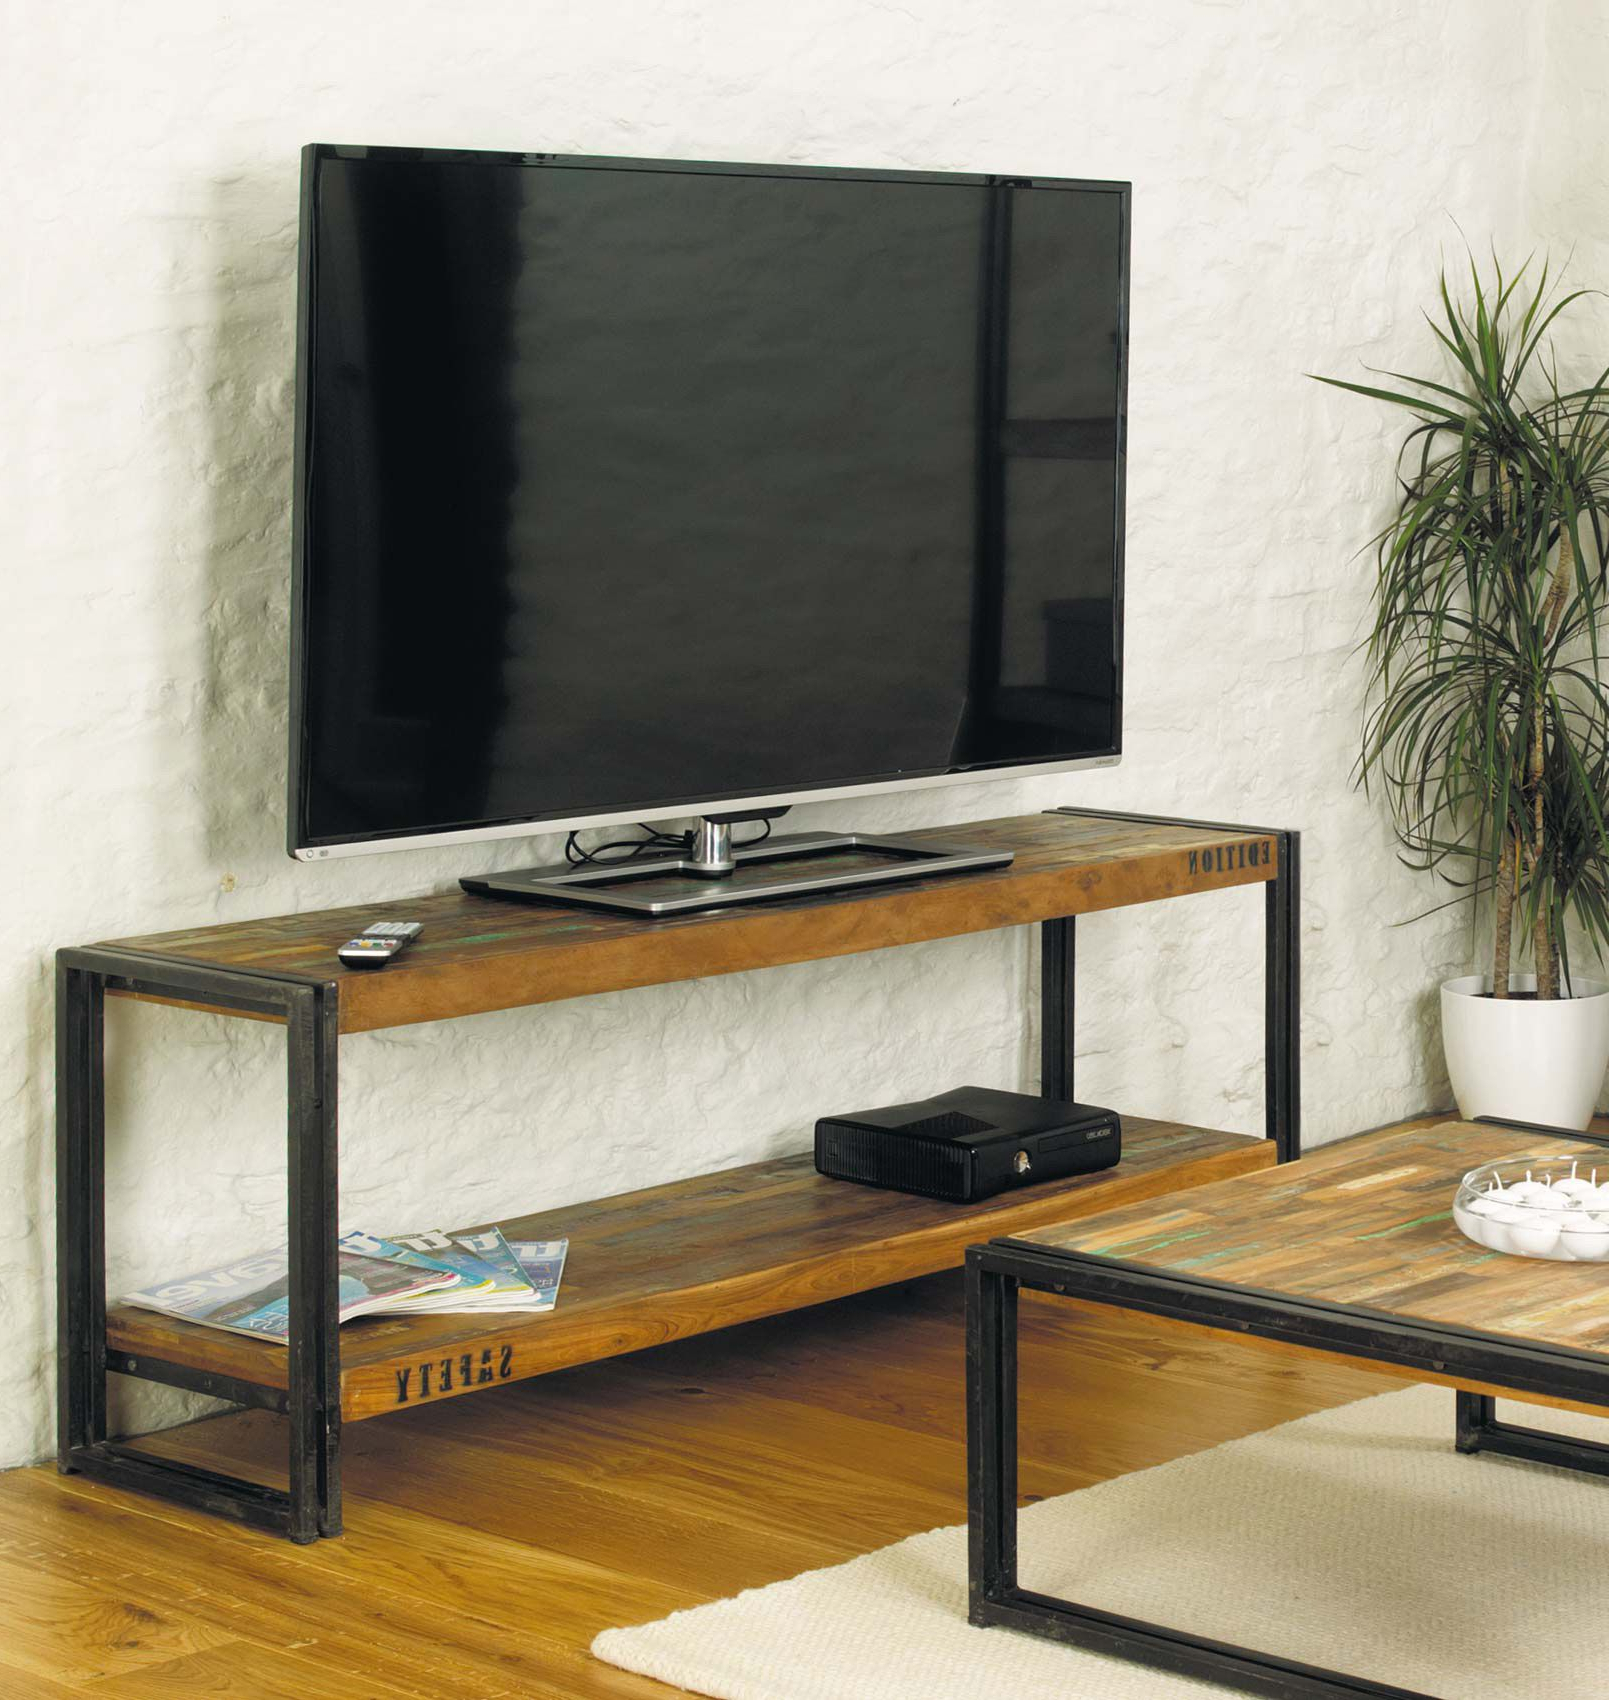 Industrial Tv Stand With Metal Legs And Reclaimed Wood. (Gallery 12 of 20)